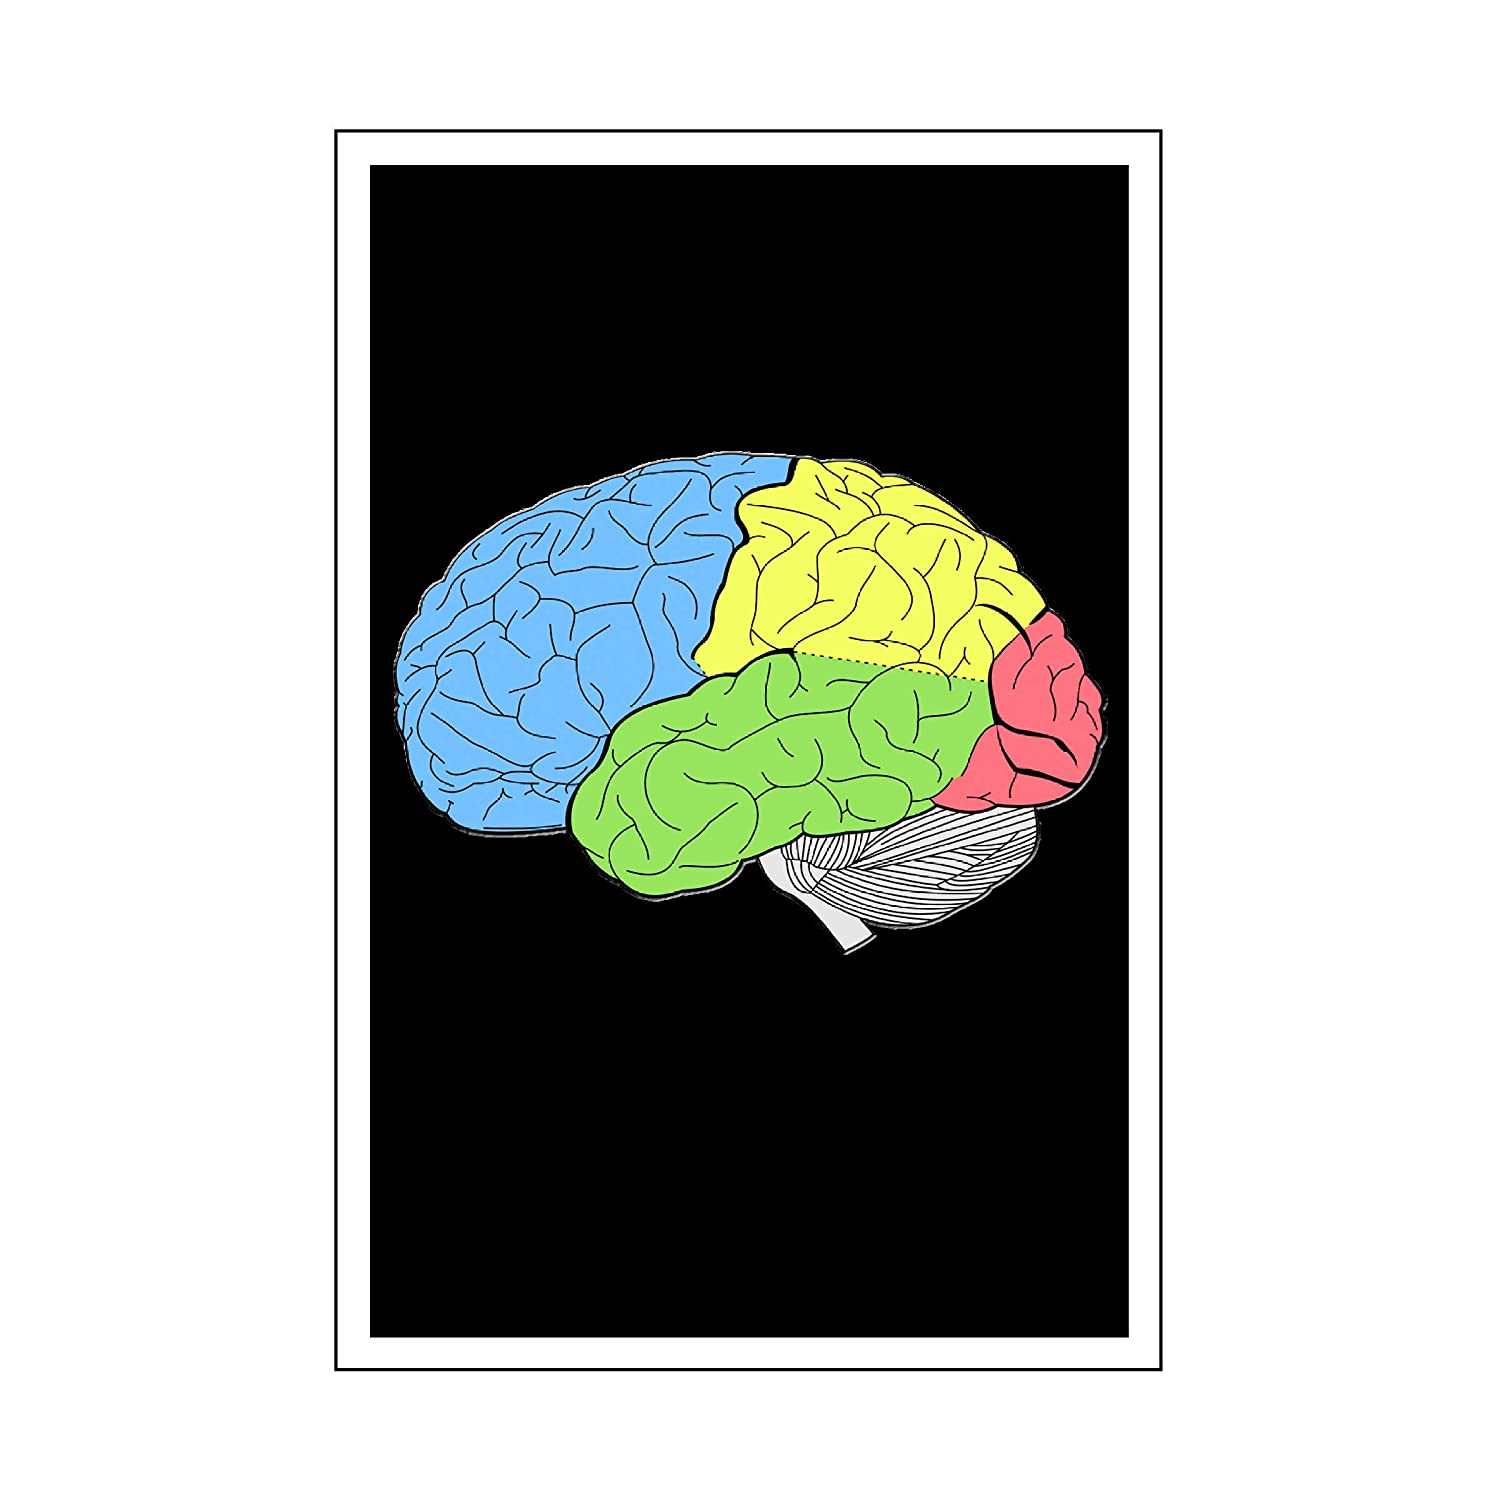 Spitzy's Lobes of Human Brain Anatomy Science Teacher Poster (12' x 18' Includes White .5' White Border) Spitzy' s